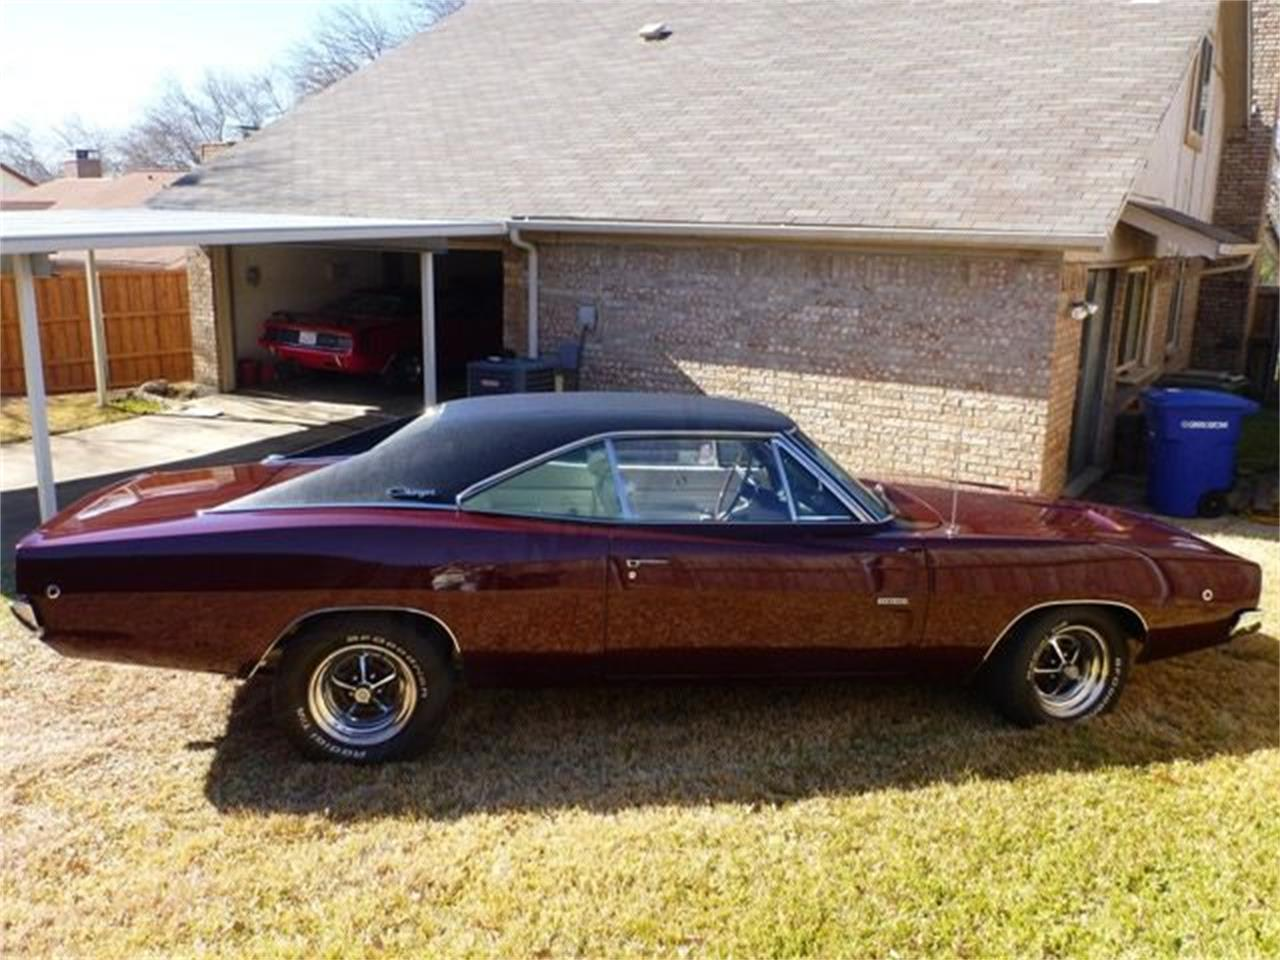 Large Picture of Classic '68 Charger located in Texas - $149,500.00 Offered by Classical Gas Enterprises - GHCH